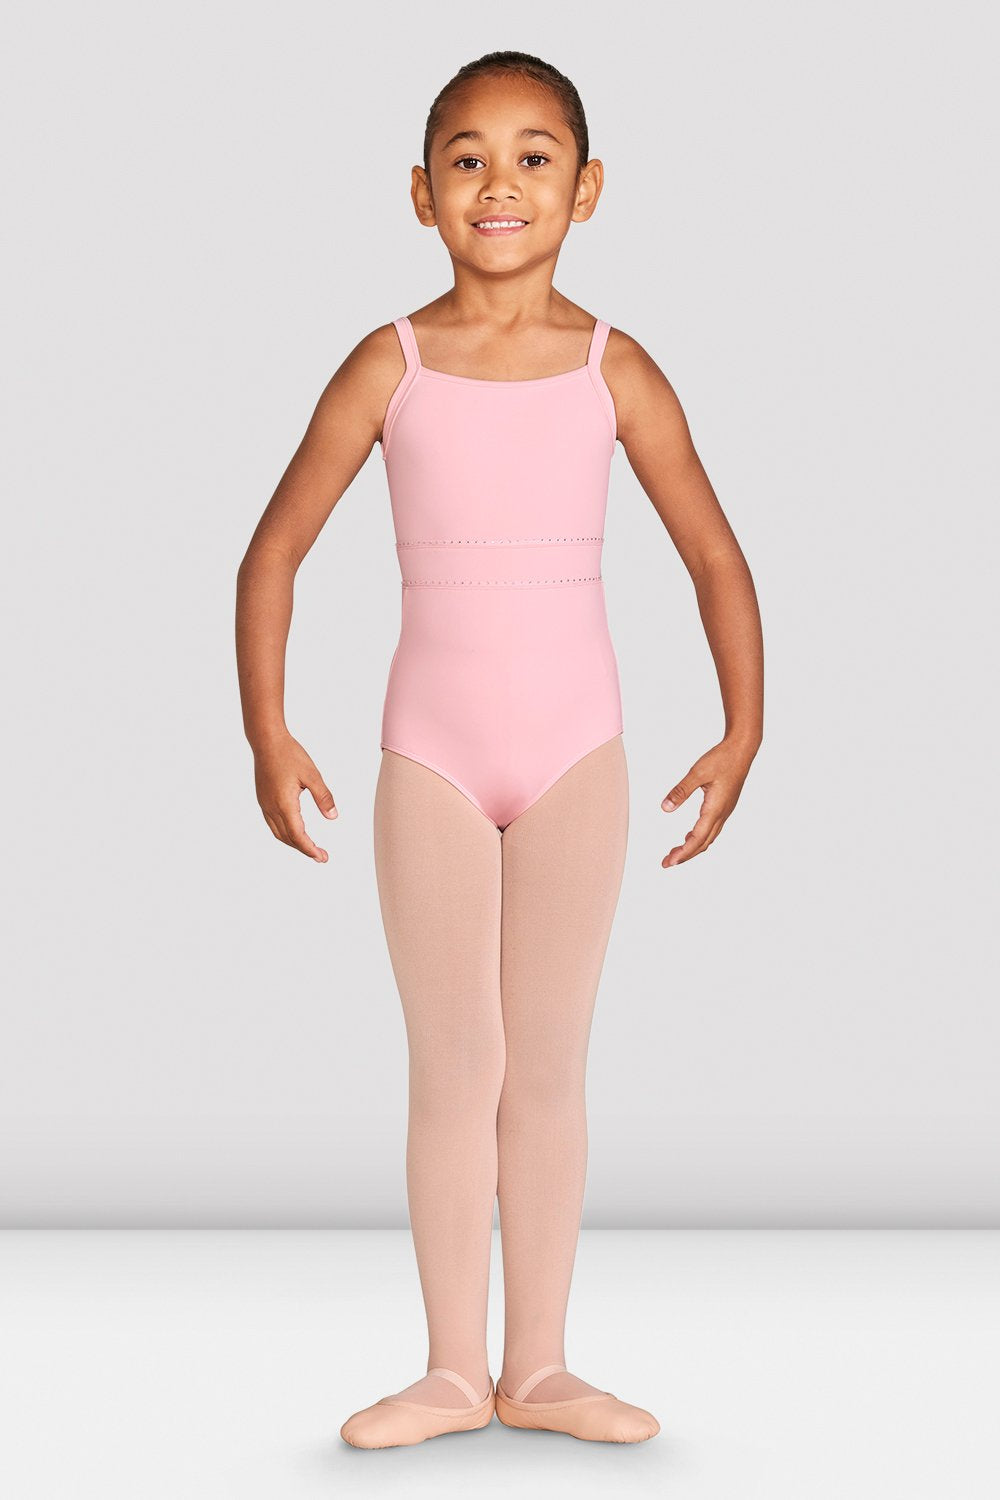 Girls Ryli Mesh Back Camisole Leotard - BLOCH US